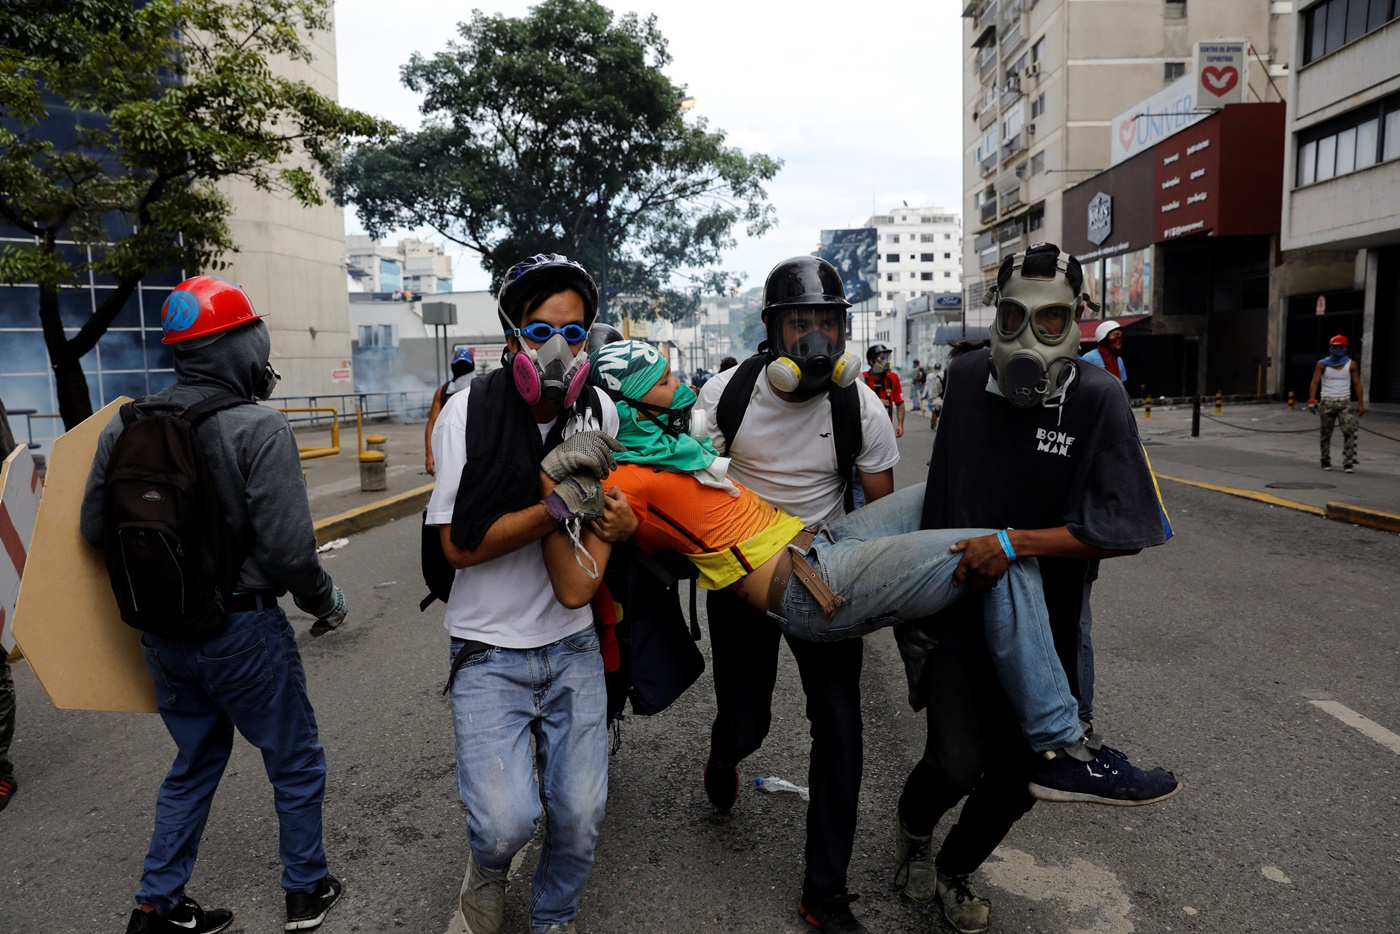 An injured opposition supporter is helped by others during a rally against President Nicolas Maduro in Caracas, Venezuela, May 3, 2017. REUTERS/Carlos Garcia Rawlins